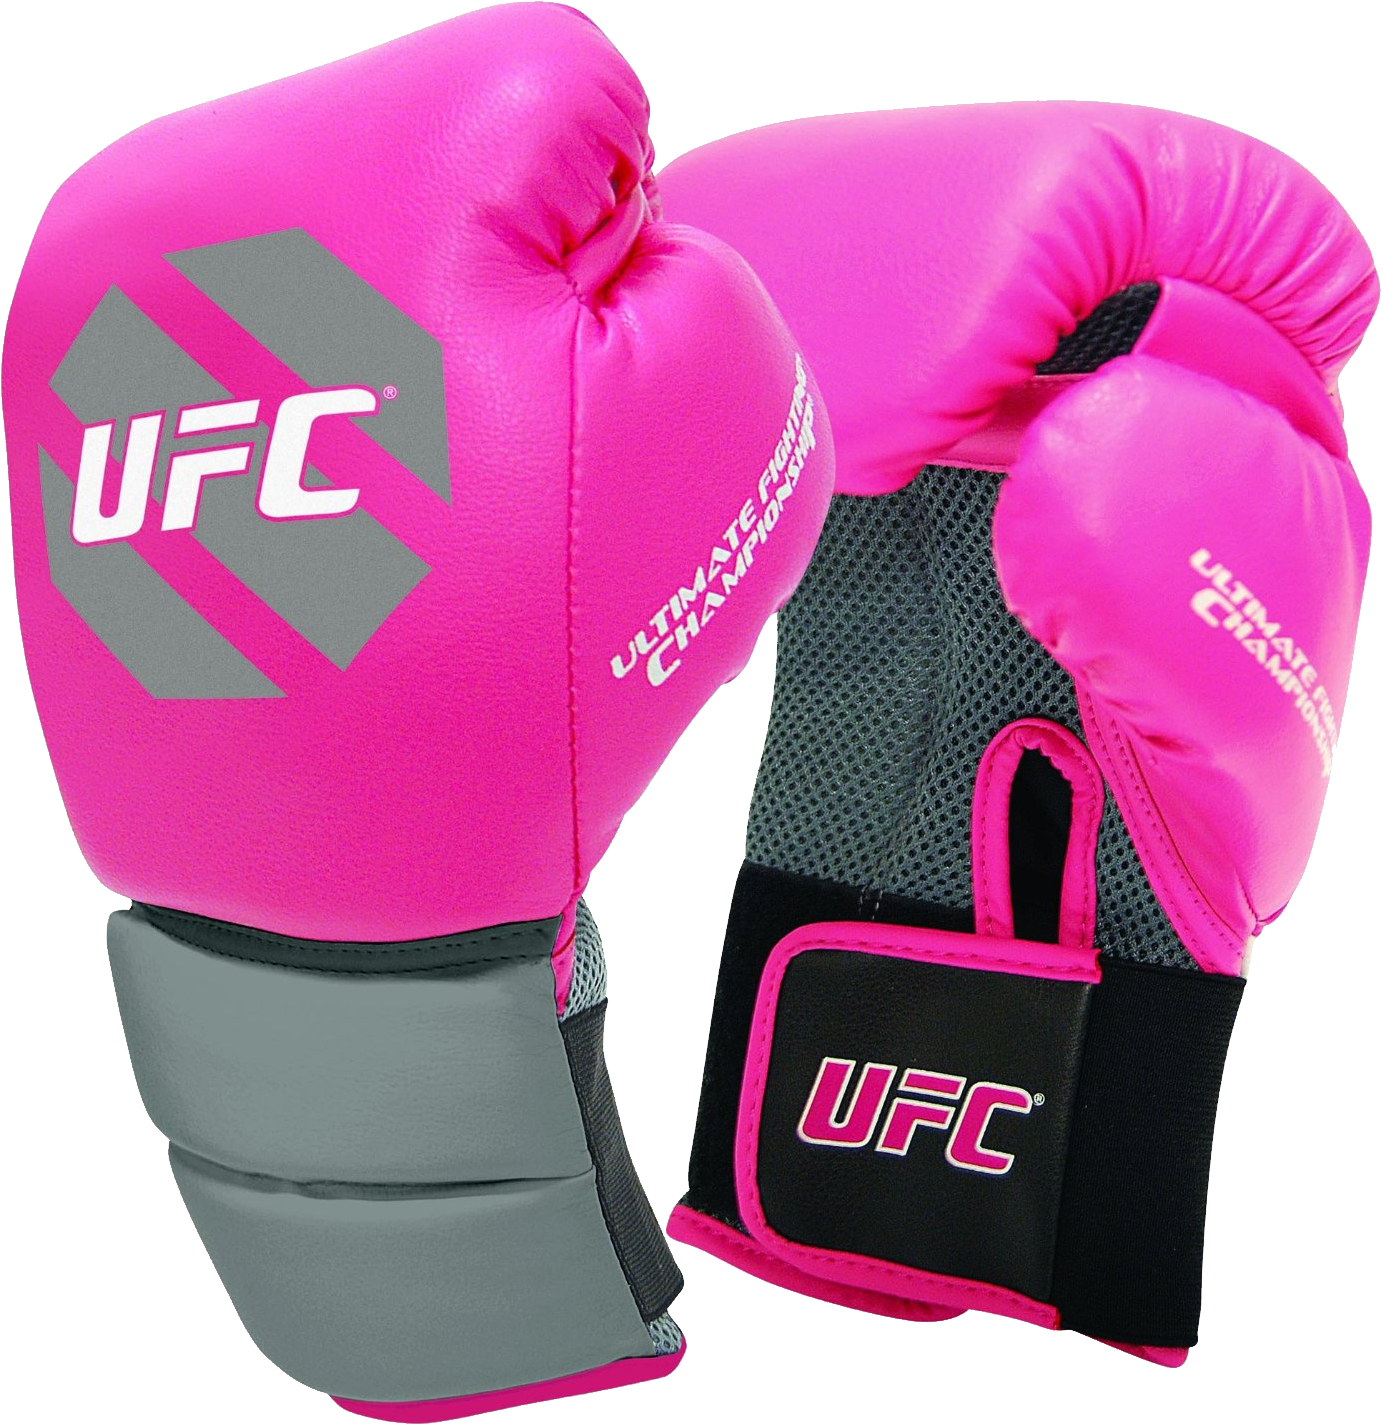 Gloves png images free. Fighting clipart woman boxing